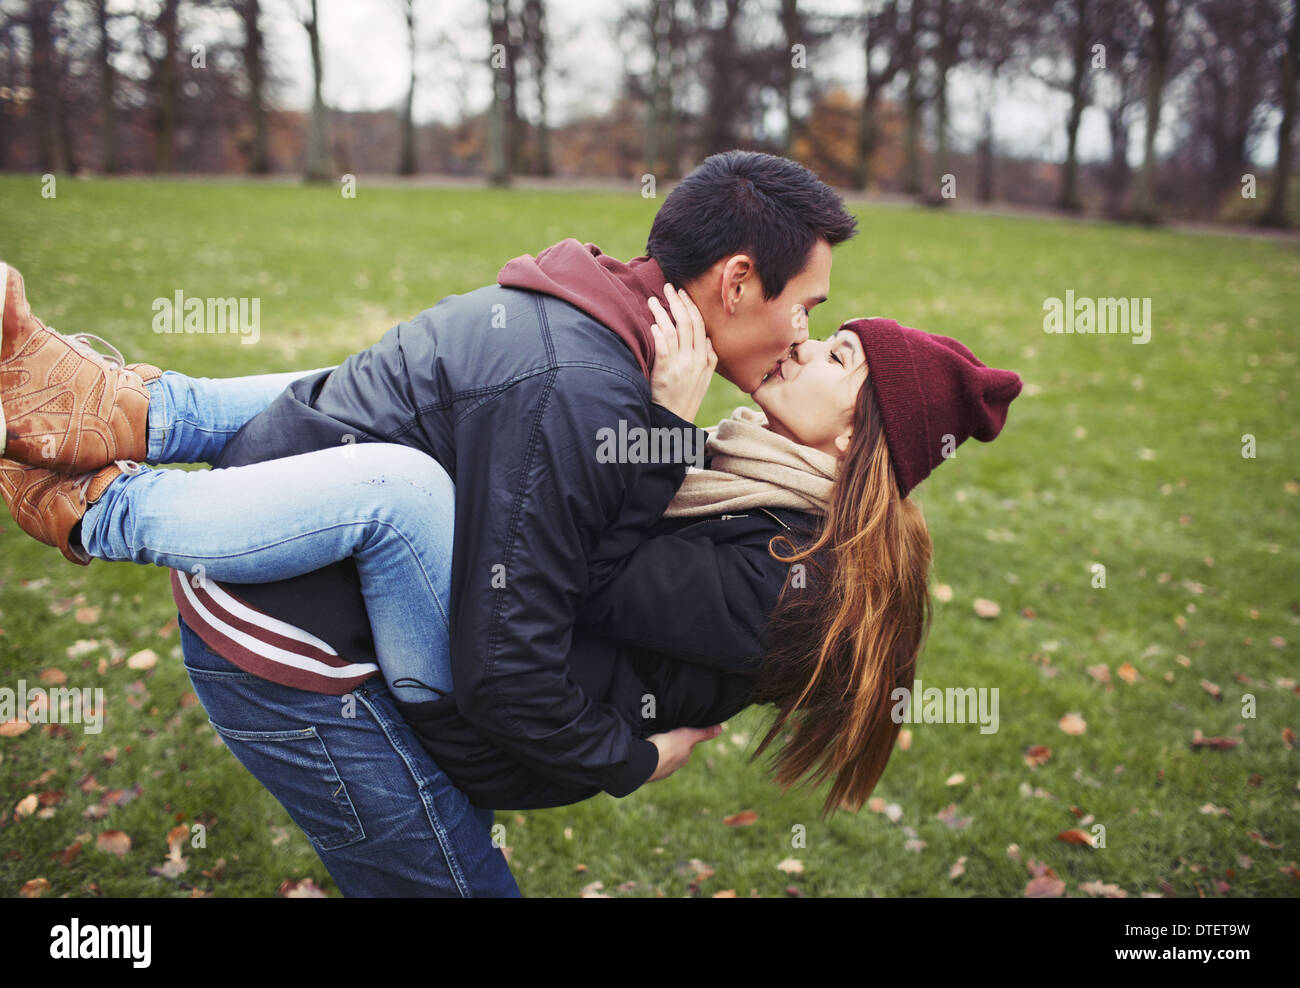 Beautiful teenage couple are passionately making love - 1 part 3